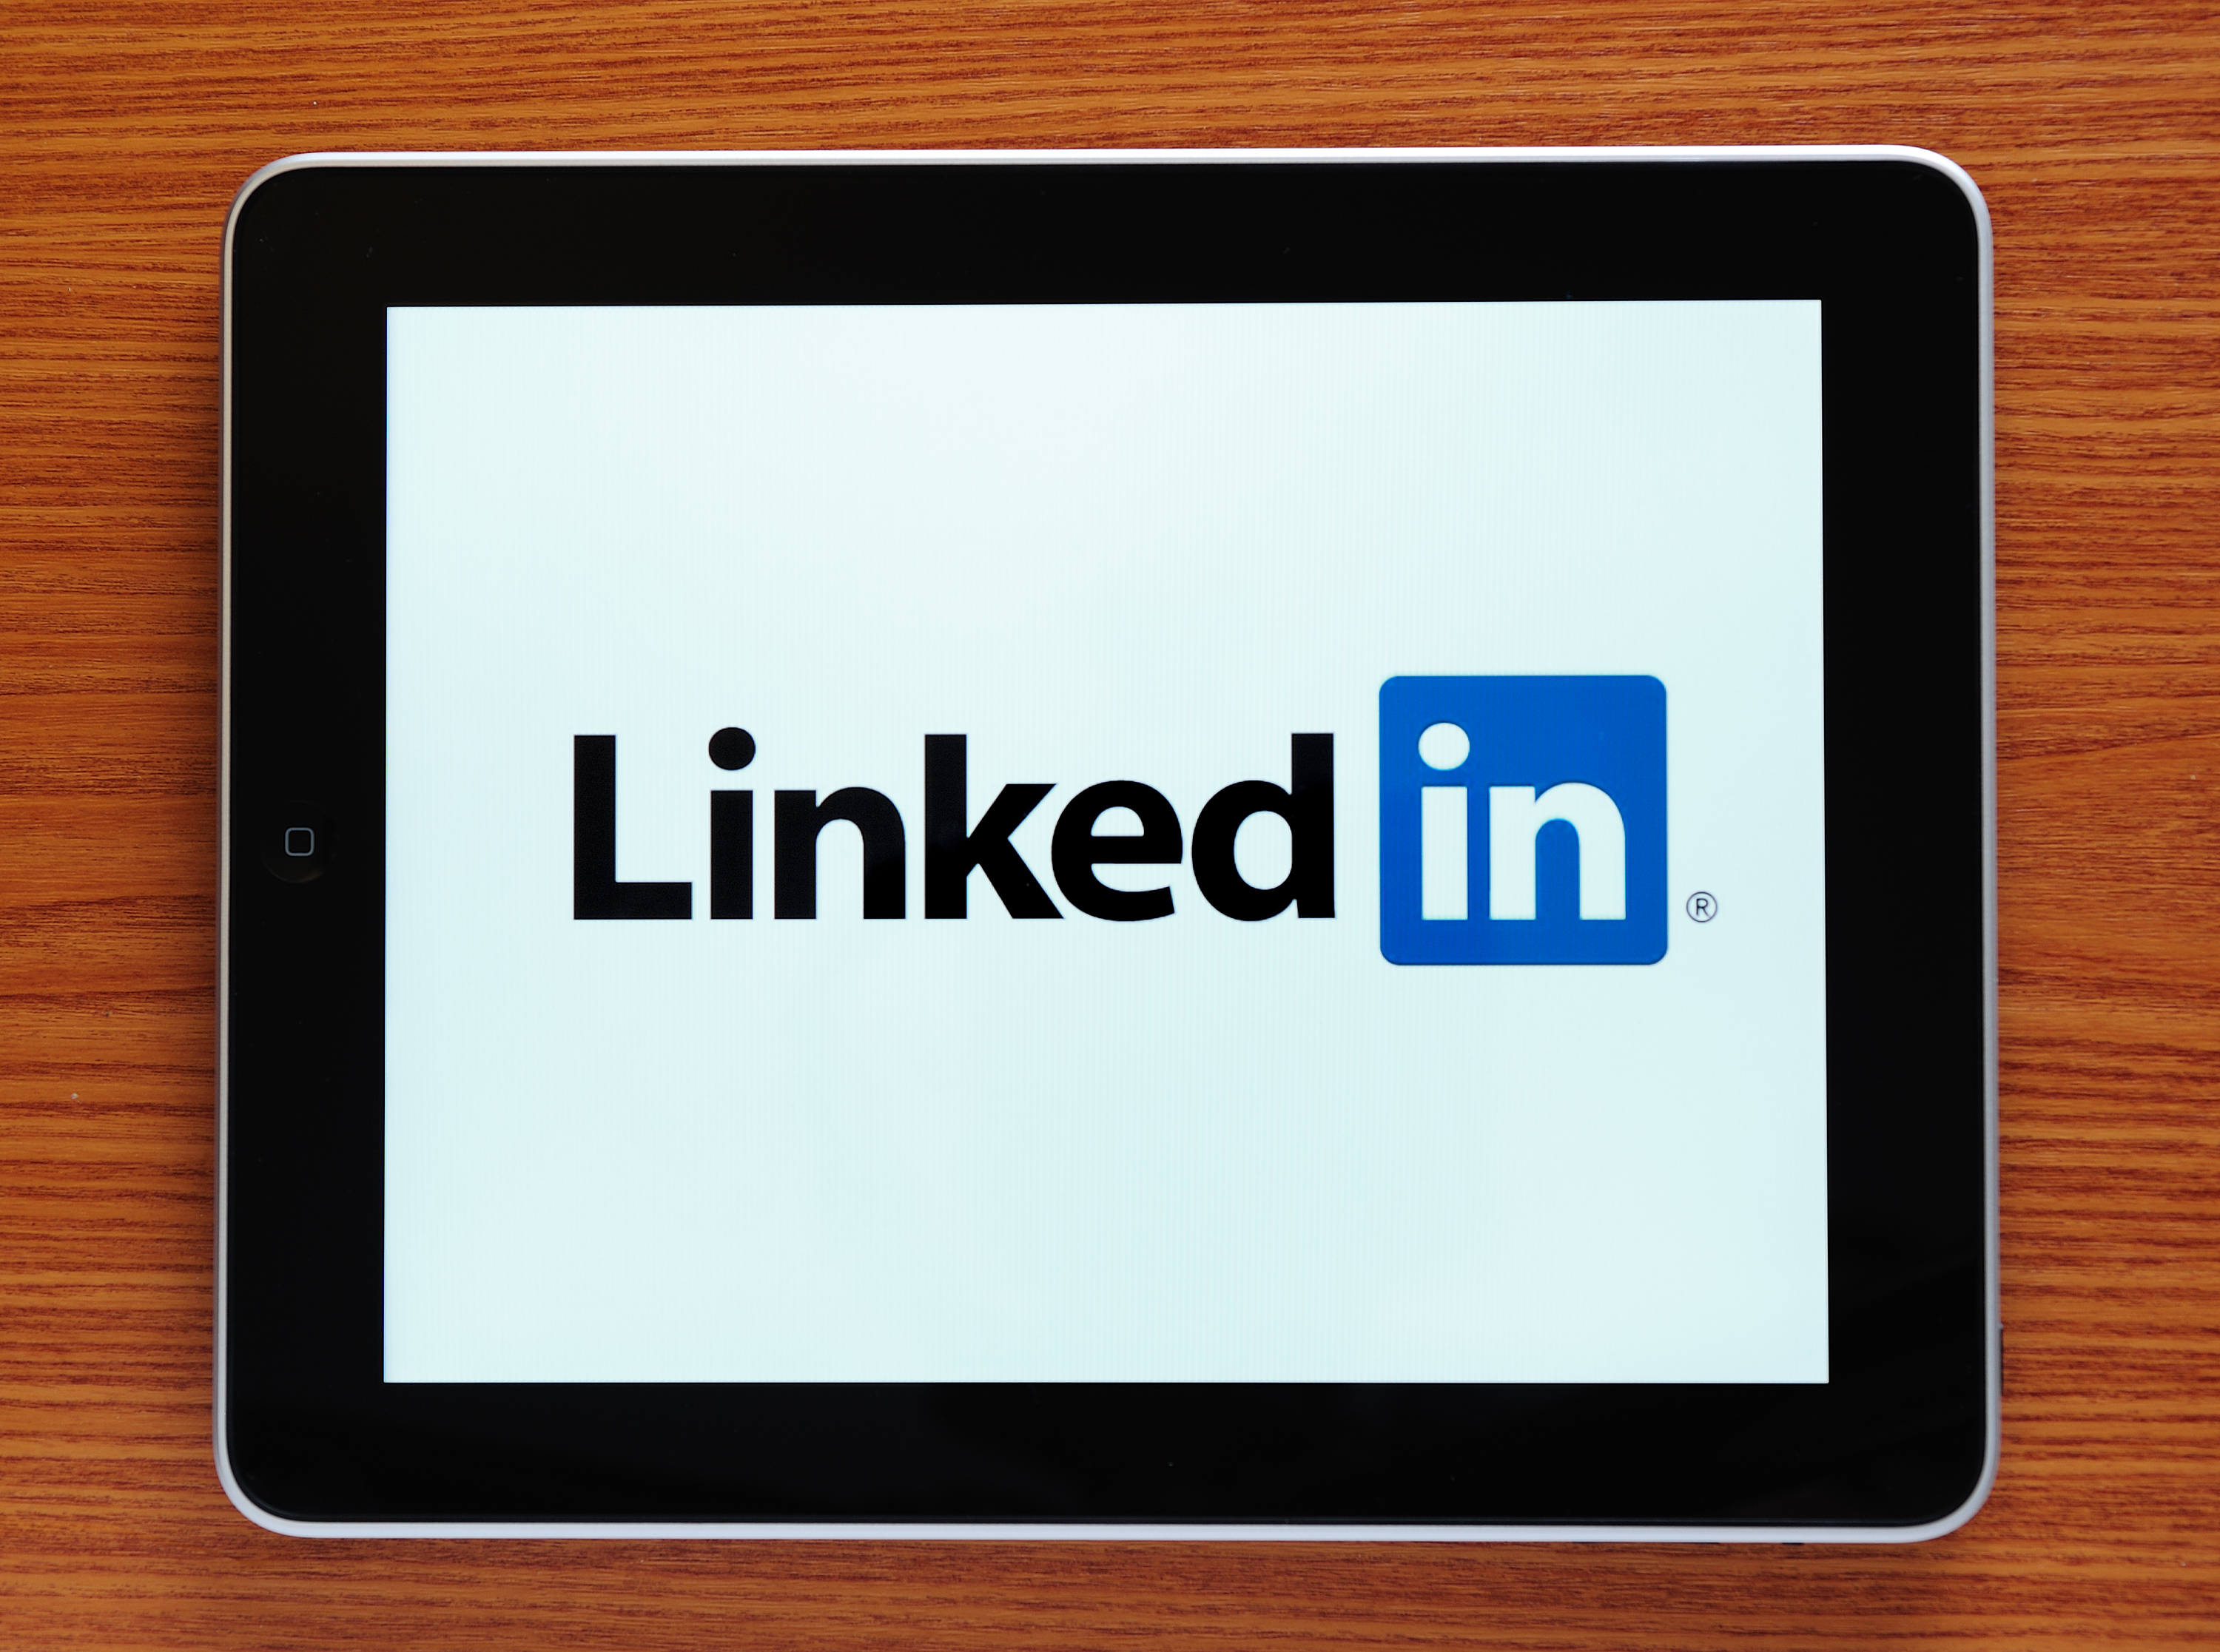 Astanbul, Turkey - October 30, 2011: Apple iPad displaying Linkedin logo. LinkedIn is a business-related social networking site The iPad, the digital tablet with multi touch screen produced by Apple Computer, Inc.